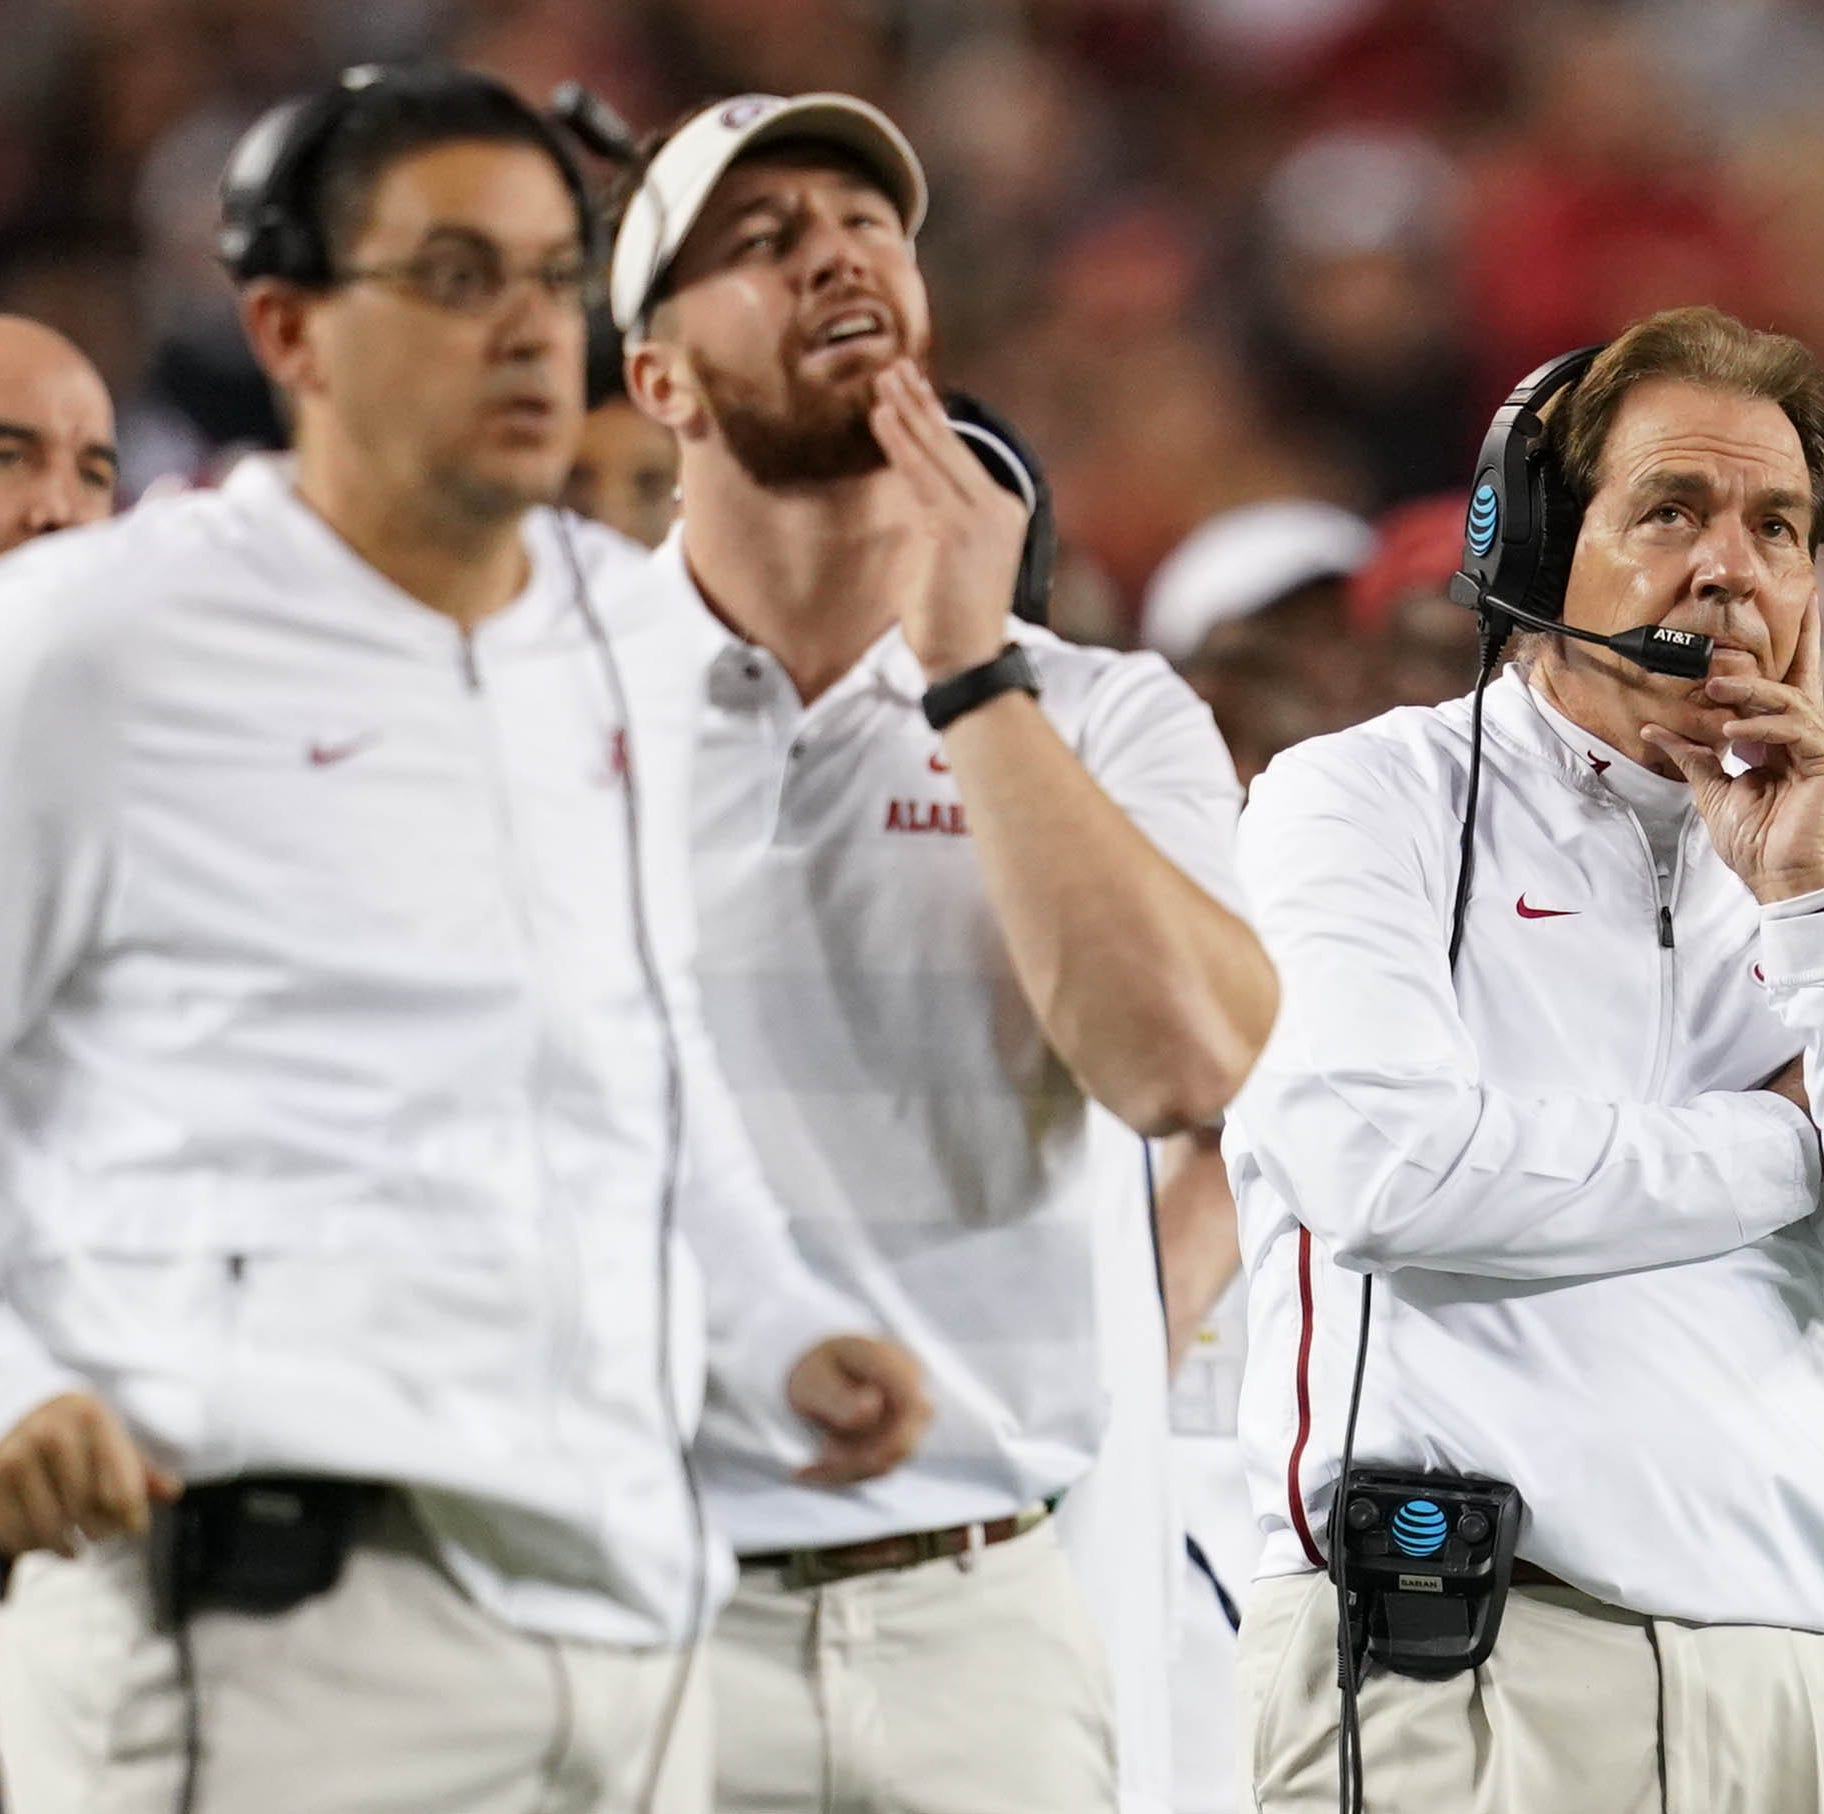 Alabama's offseason staff overhaul begins as 2 offensive assistants leave